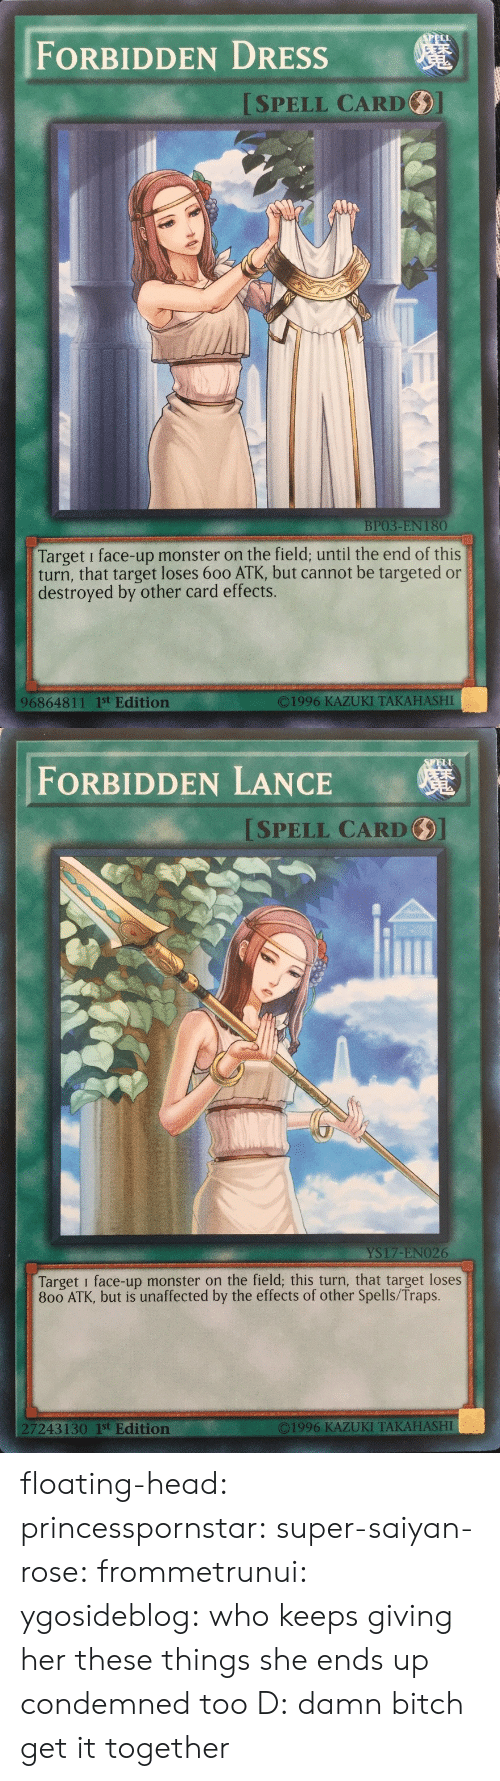 floating: FORBIDDEN DRESSs  ISPELL CARD  BP03-EN 180  Target i face-up monster on the field; until the end of this  turn, that target loses 600 ATK, but cannot be targeted or  destroyed by other card effects.  O1996 KAZUKI TAKAHASHI  96864811 1st Edition   ELL  FORBIDDEN LANCE  SPELL CARD  YS17-ENO26  Target i face-up monster on the field; this turn, that target loses  800 ATK, but is unaffected by the effects of other Spells/Traps.  7243130 1st Edition  ©1996 KAZUKI TAKAHASHI floating-head:  princesspornstar:  super-saiyan-rose:  frommetrunui:   ygosideblog: who keeps giving her these things   she ends up condemned too D:    damn bitch get it together